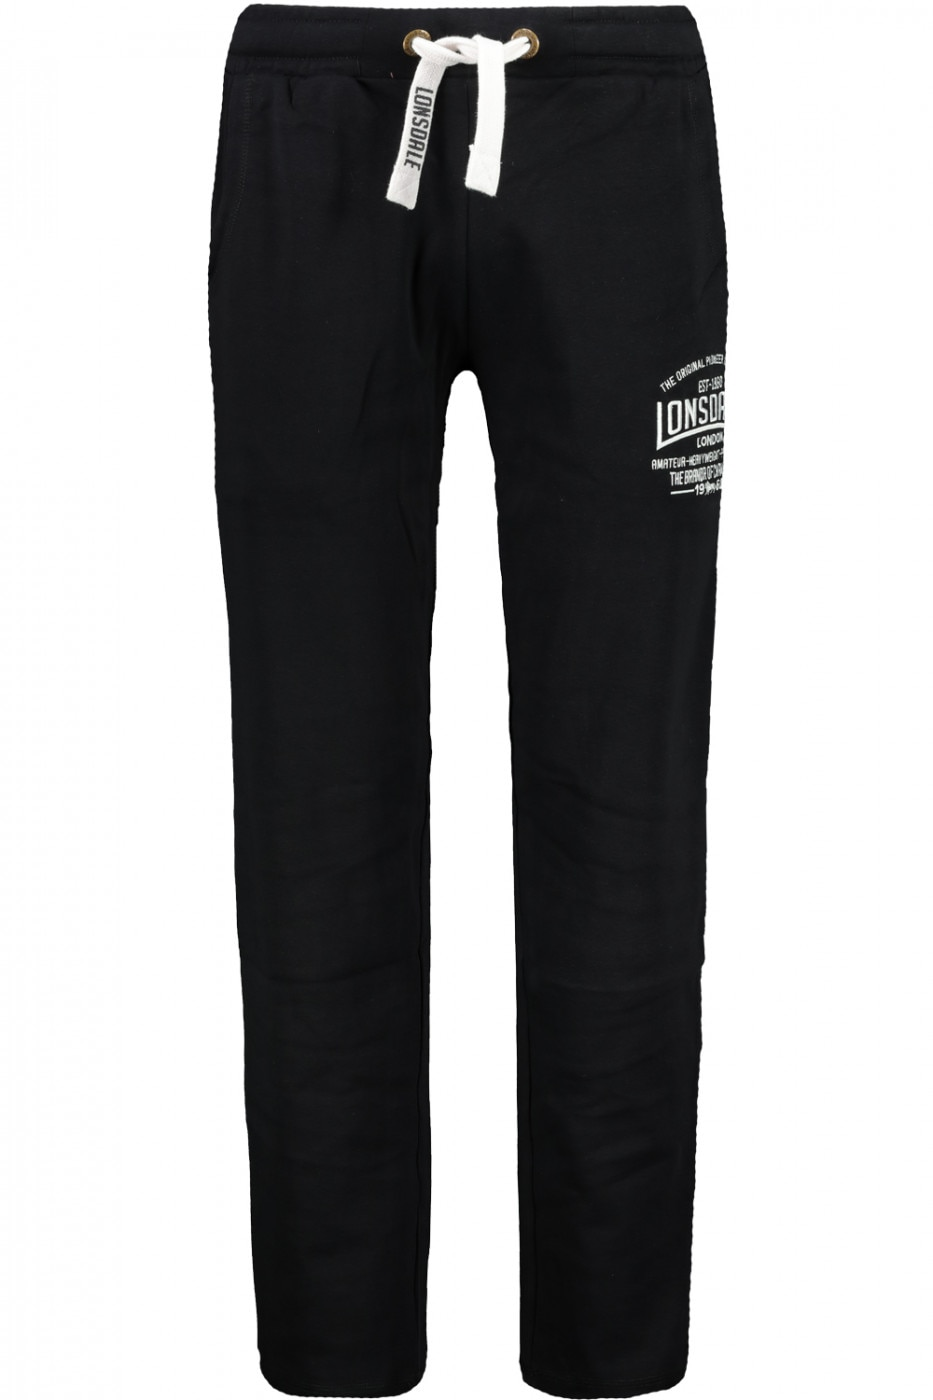 Men's sweatpants Lonsdale Box Lightweight